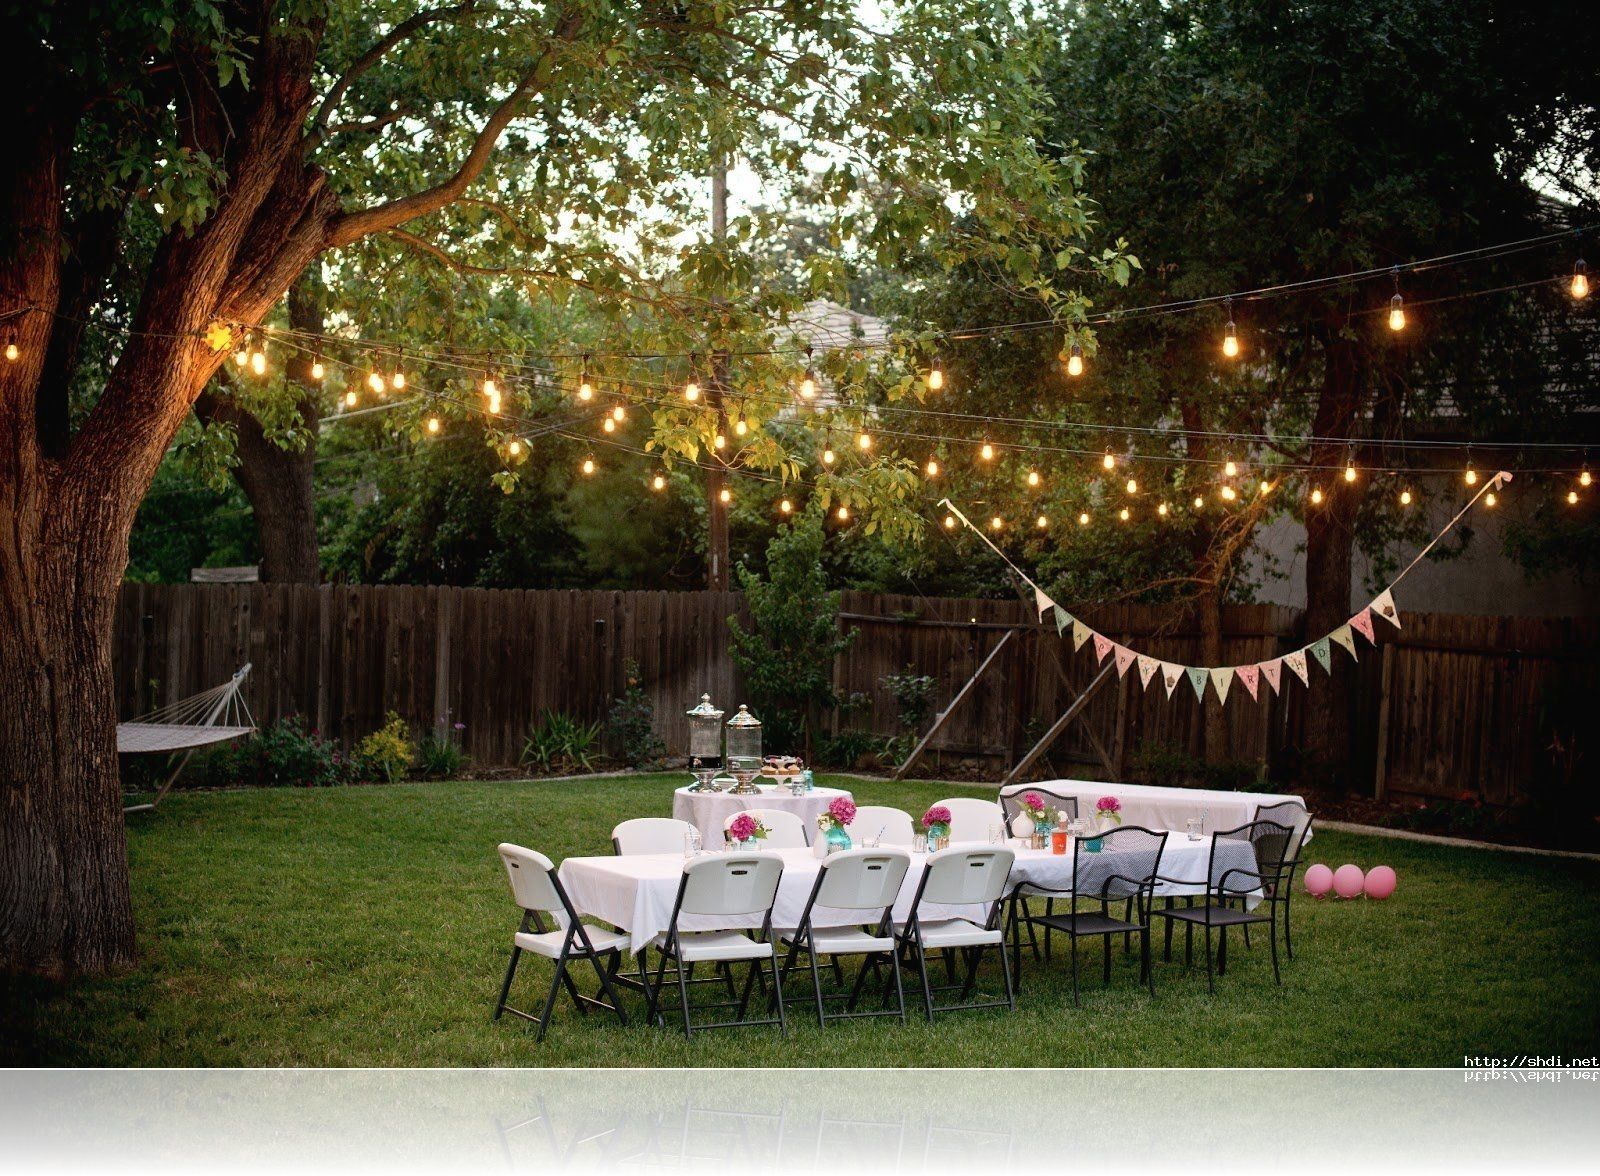 10 Stylish Backyard Birthday Party Ideas For Adults engagement party ideas outside google search engagement party